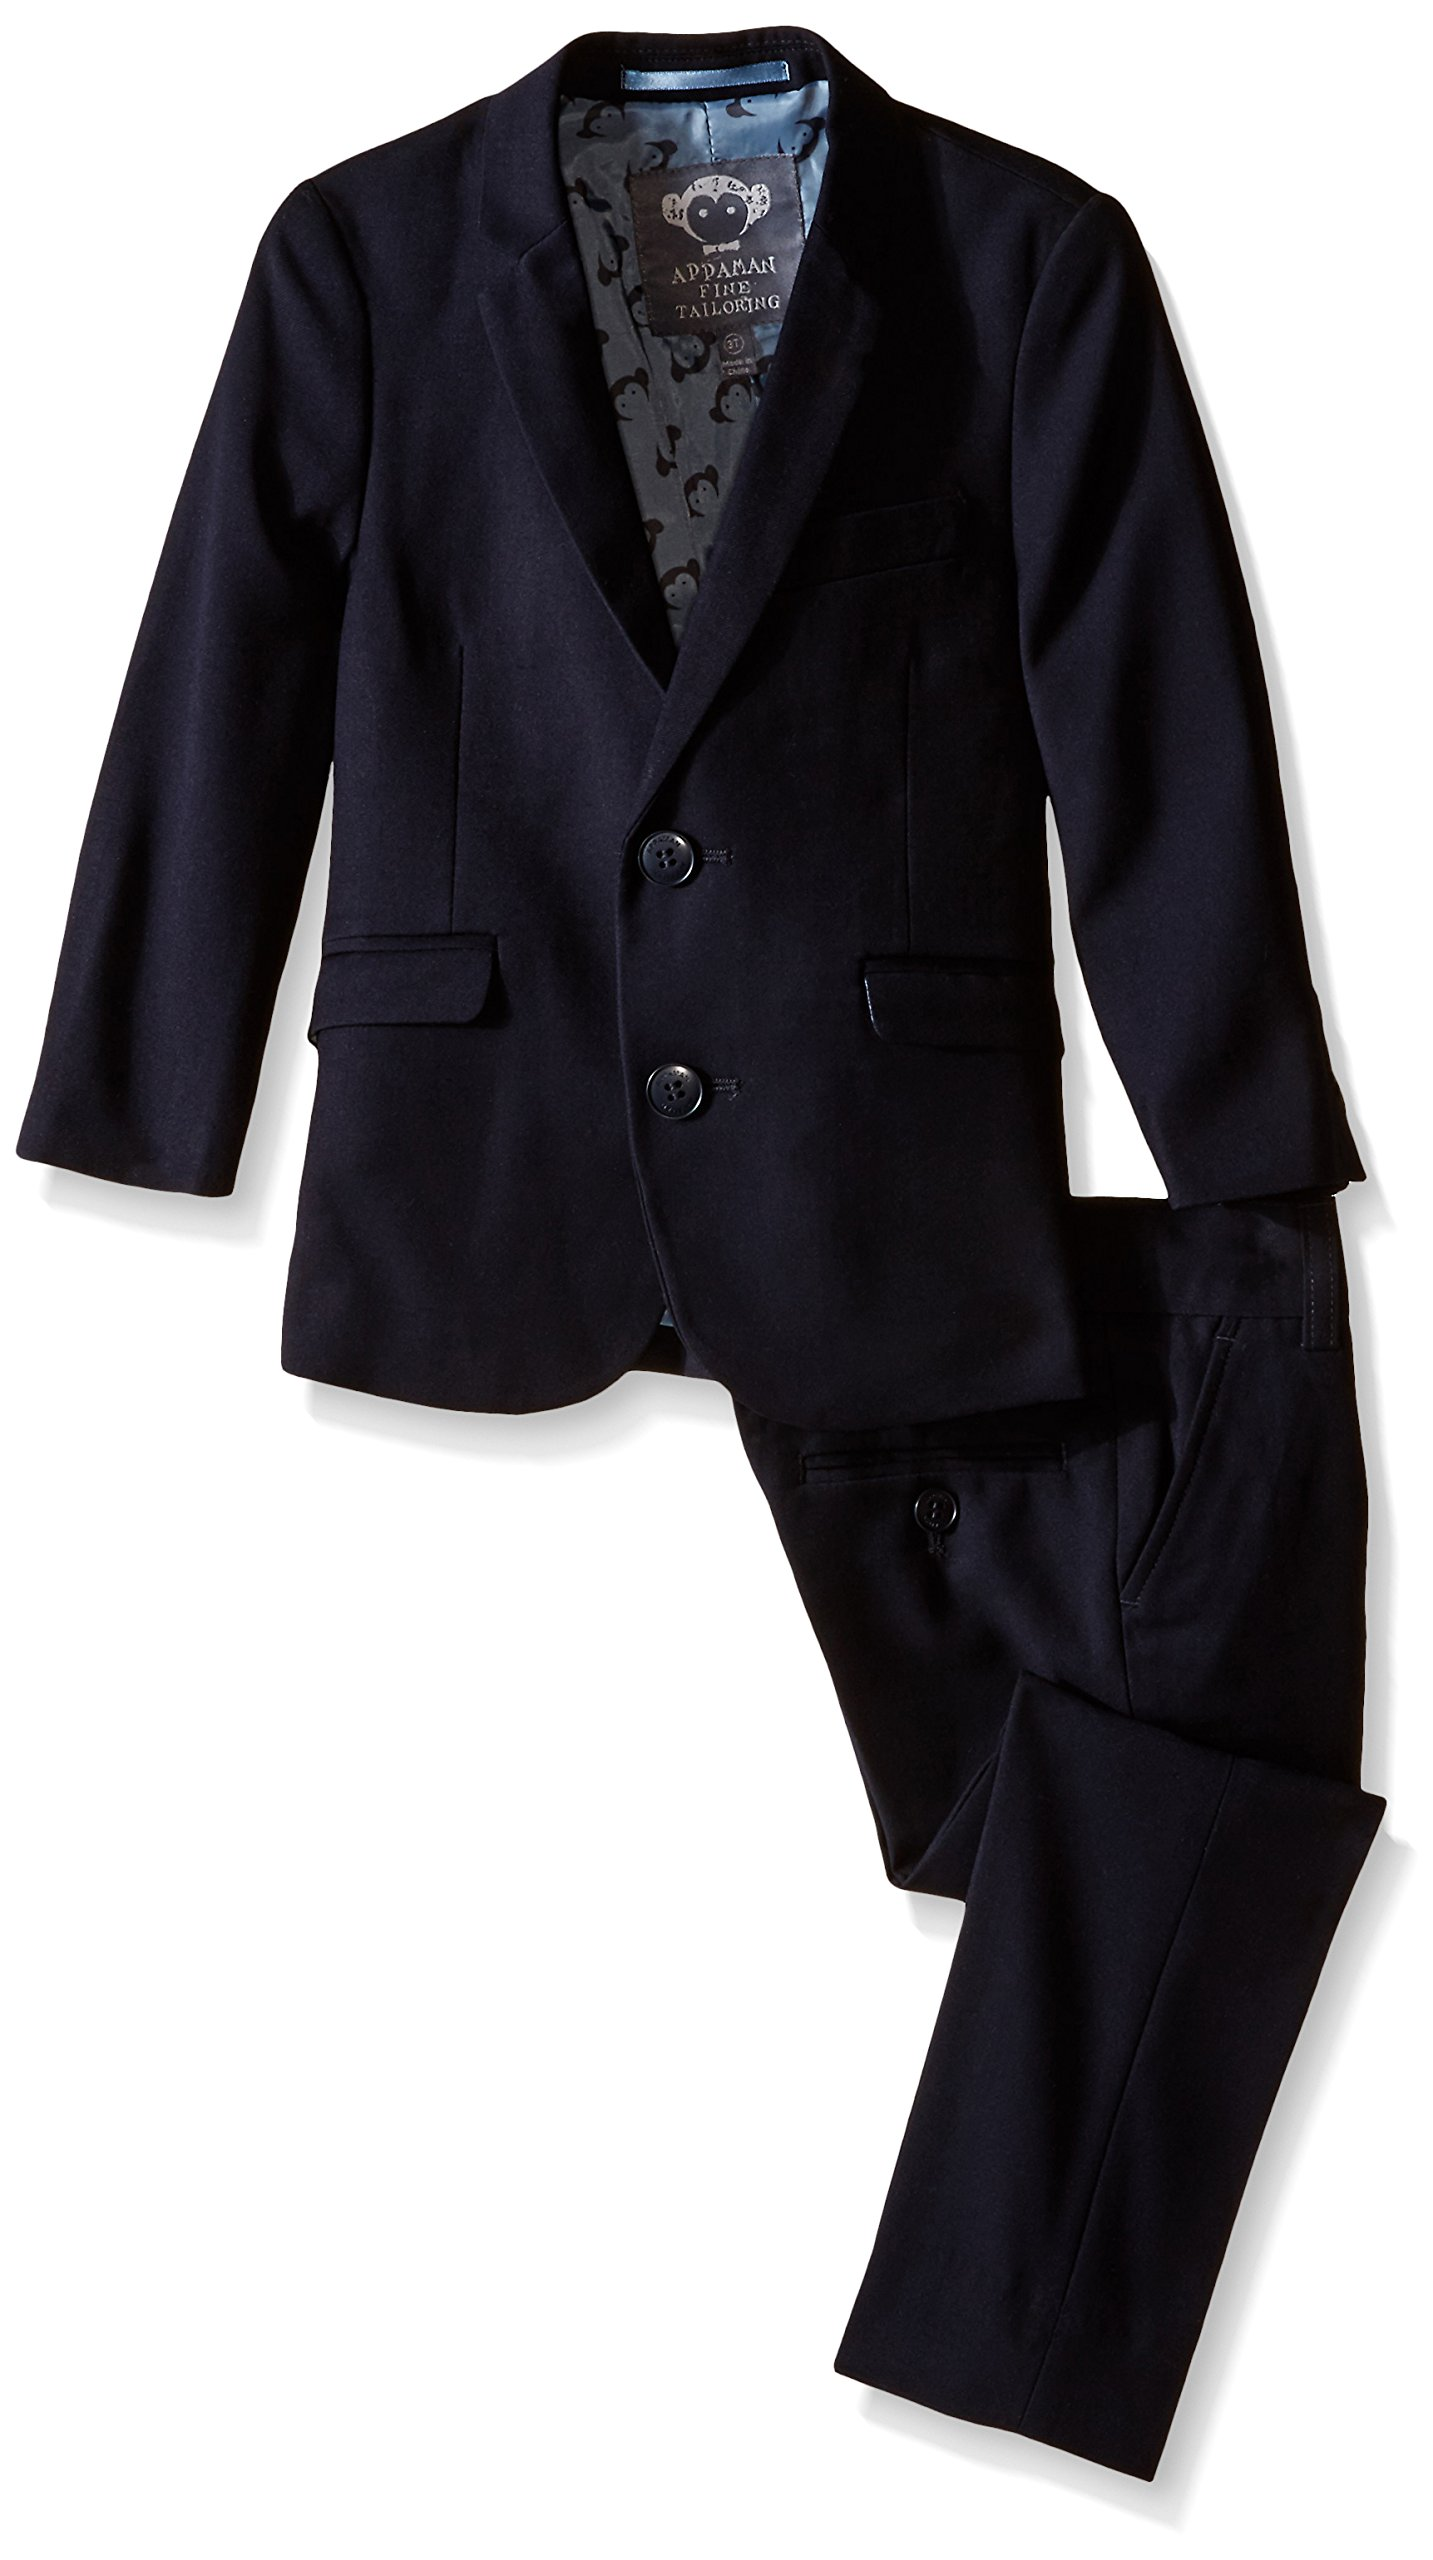 Appaman Little Boys' Core Two Piece Classic Mod Suit, Navy, 7 by Appaman